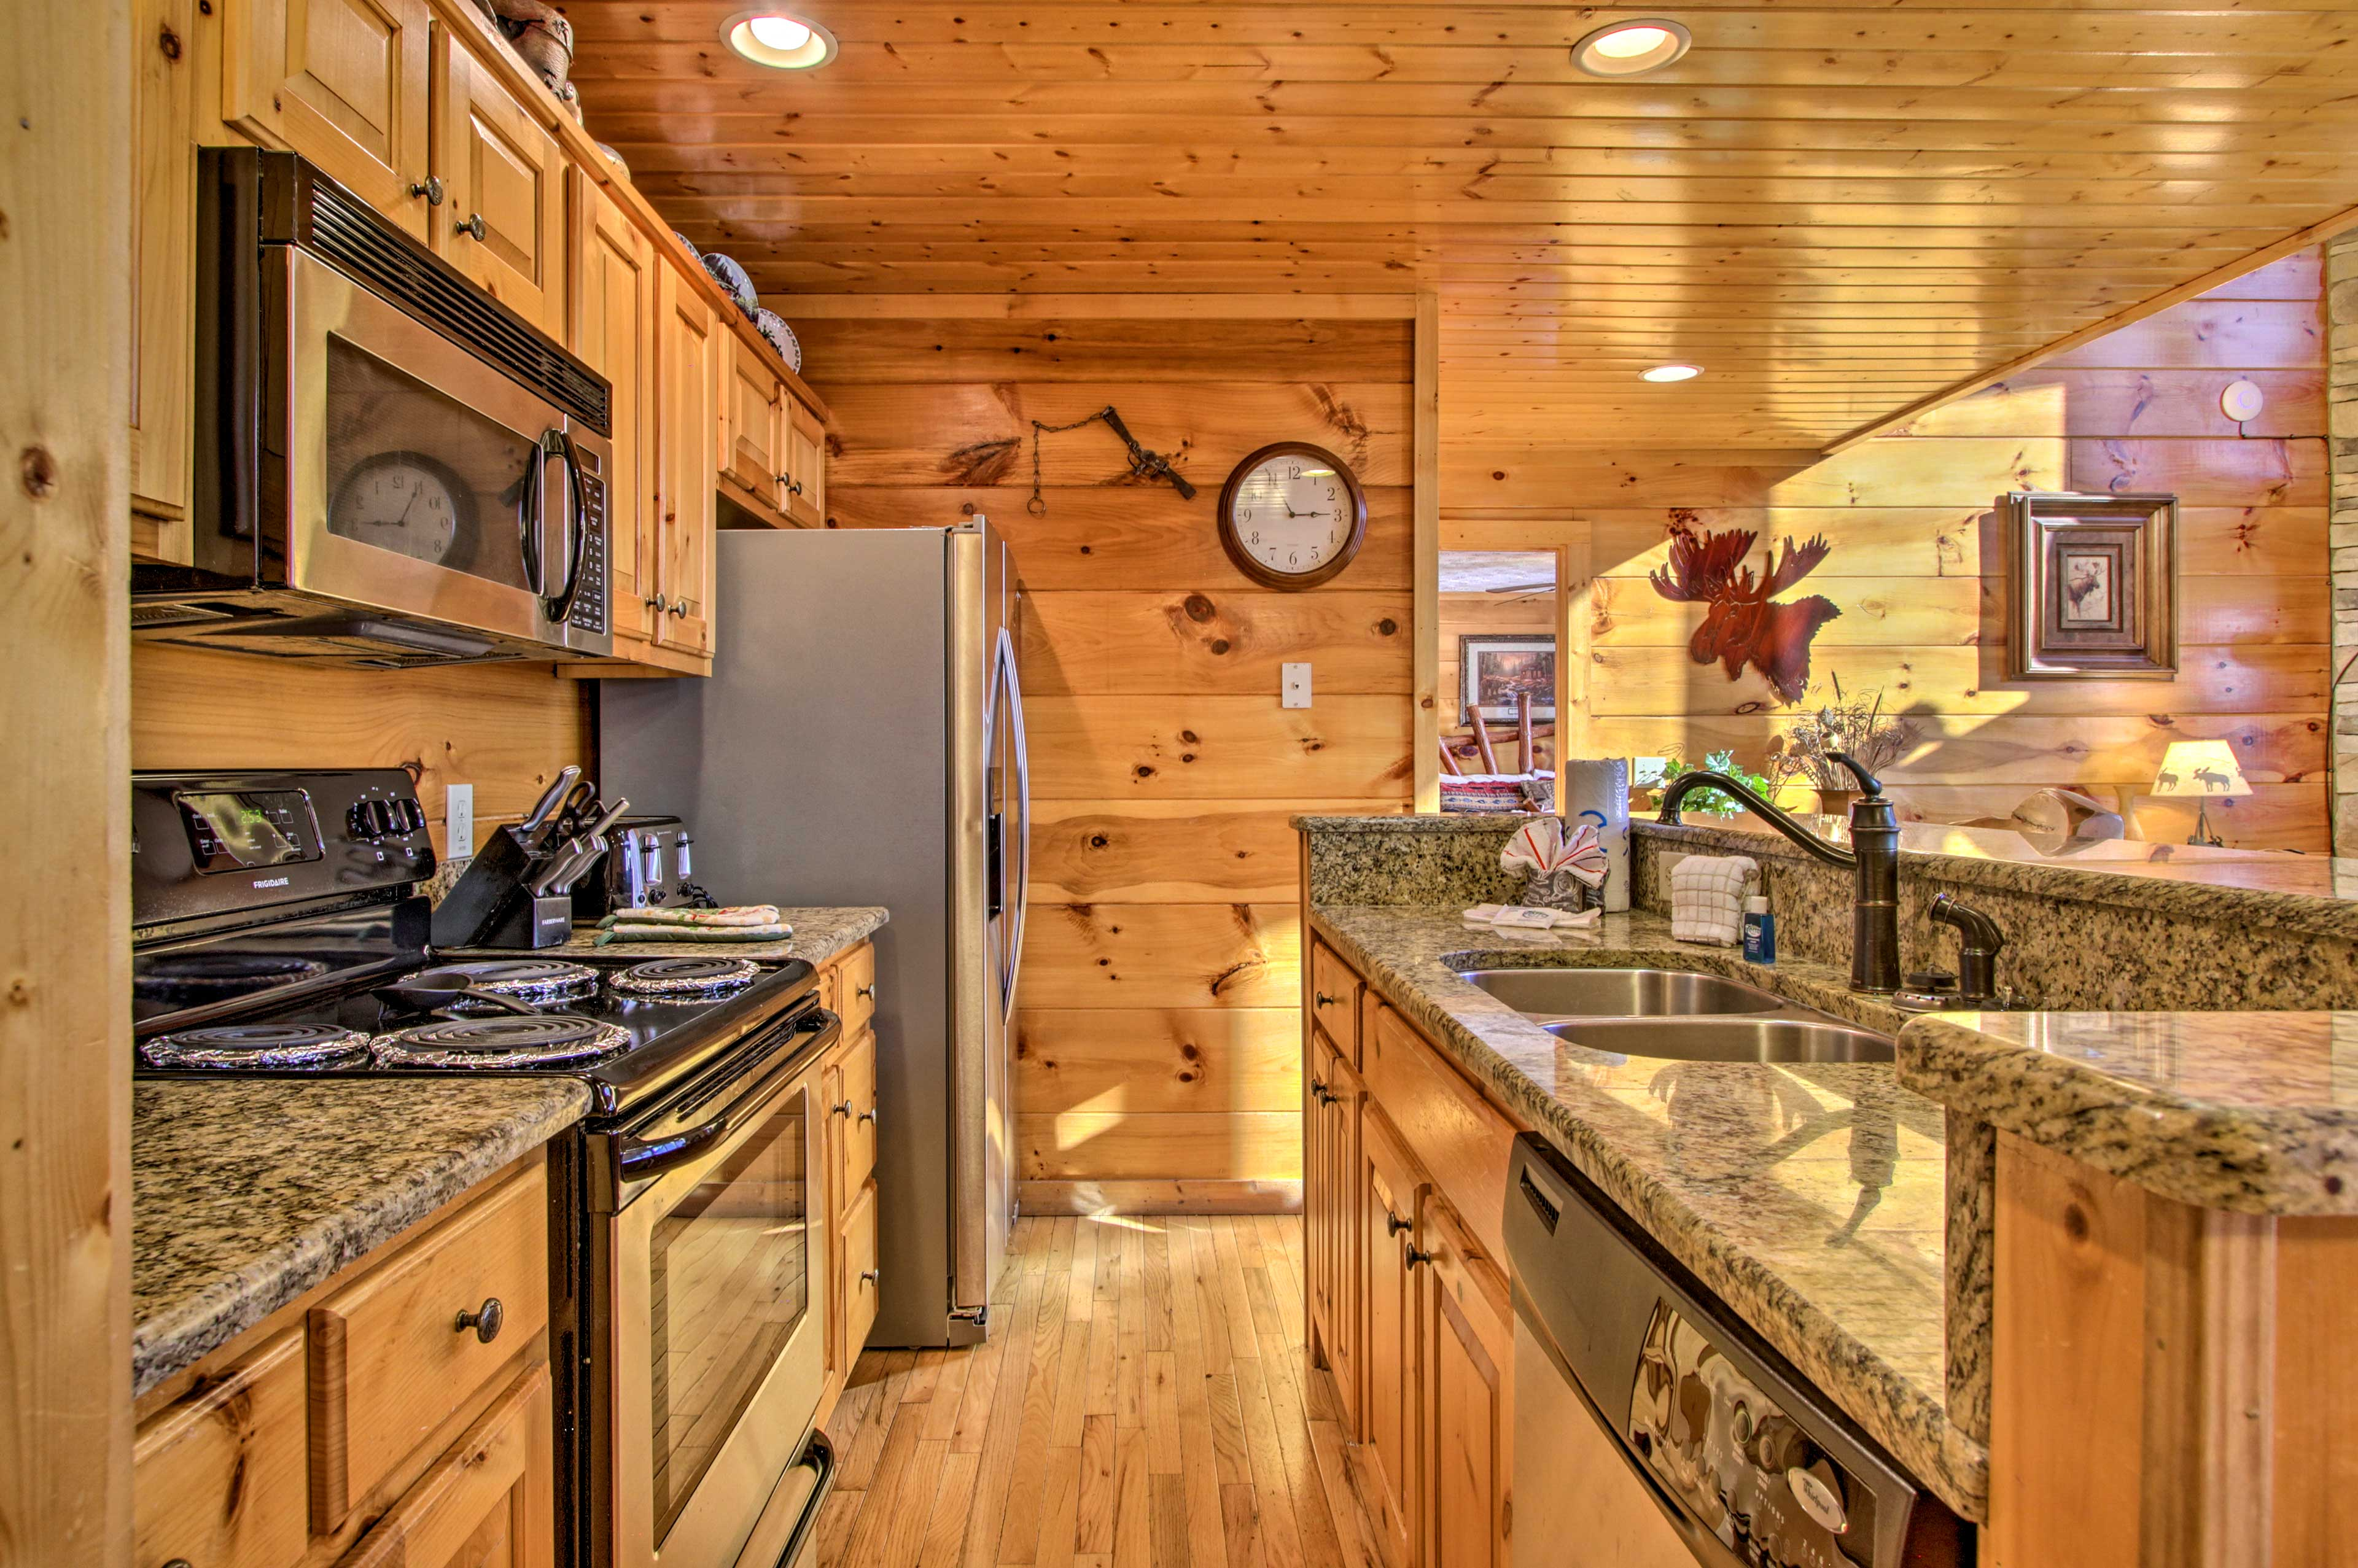 Hearty meals await to be prepared in the fully equipped kitchen!